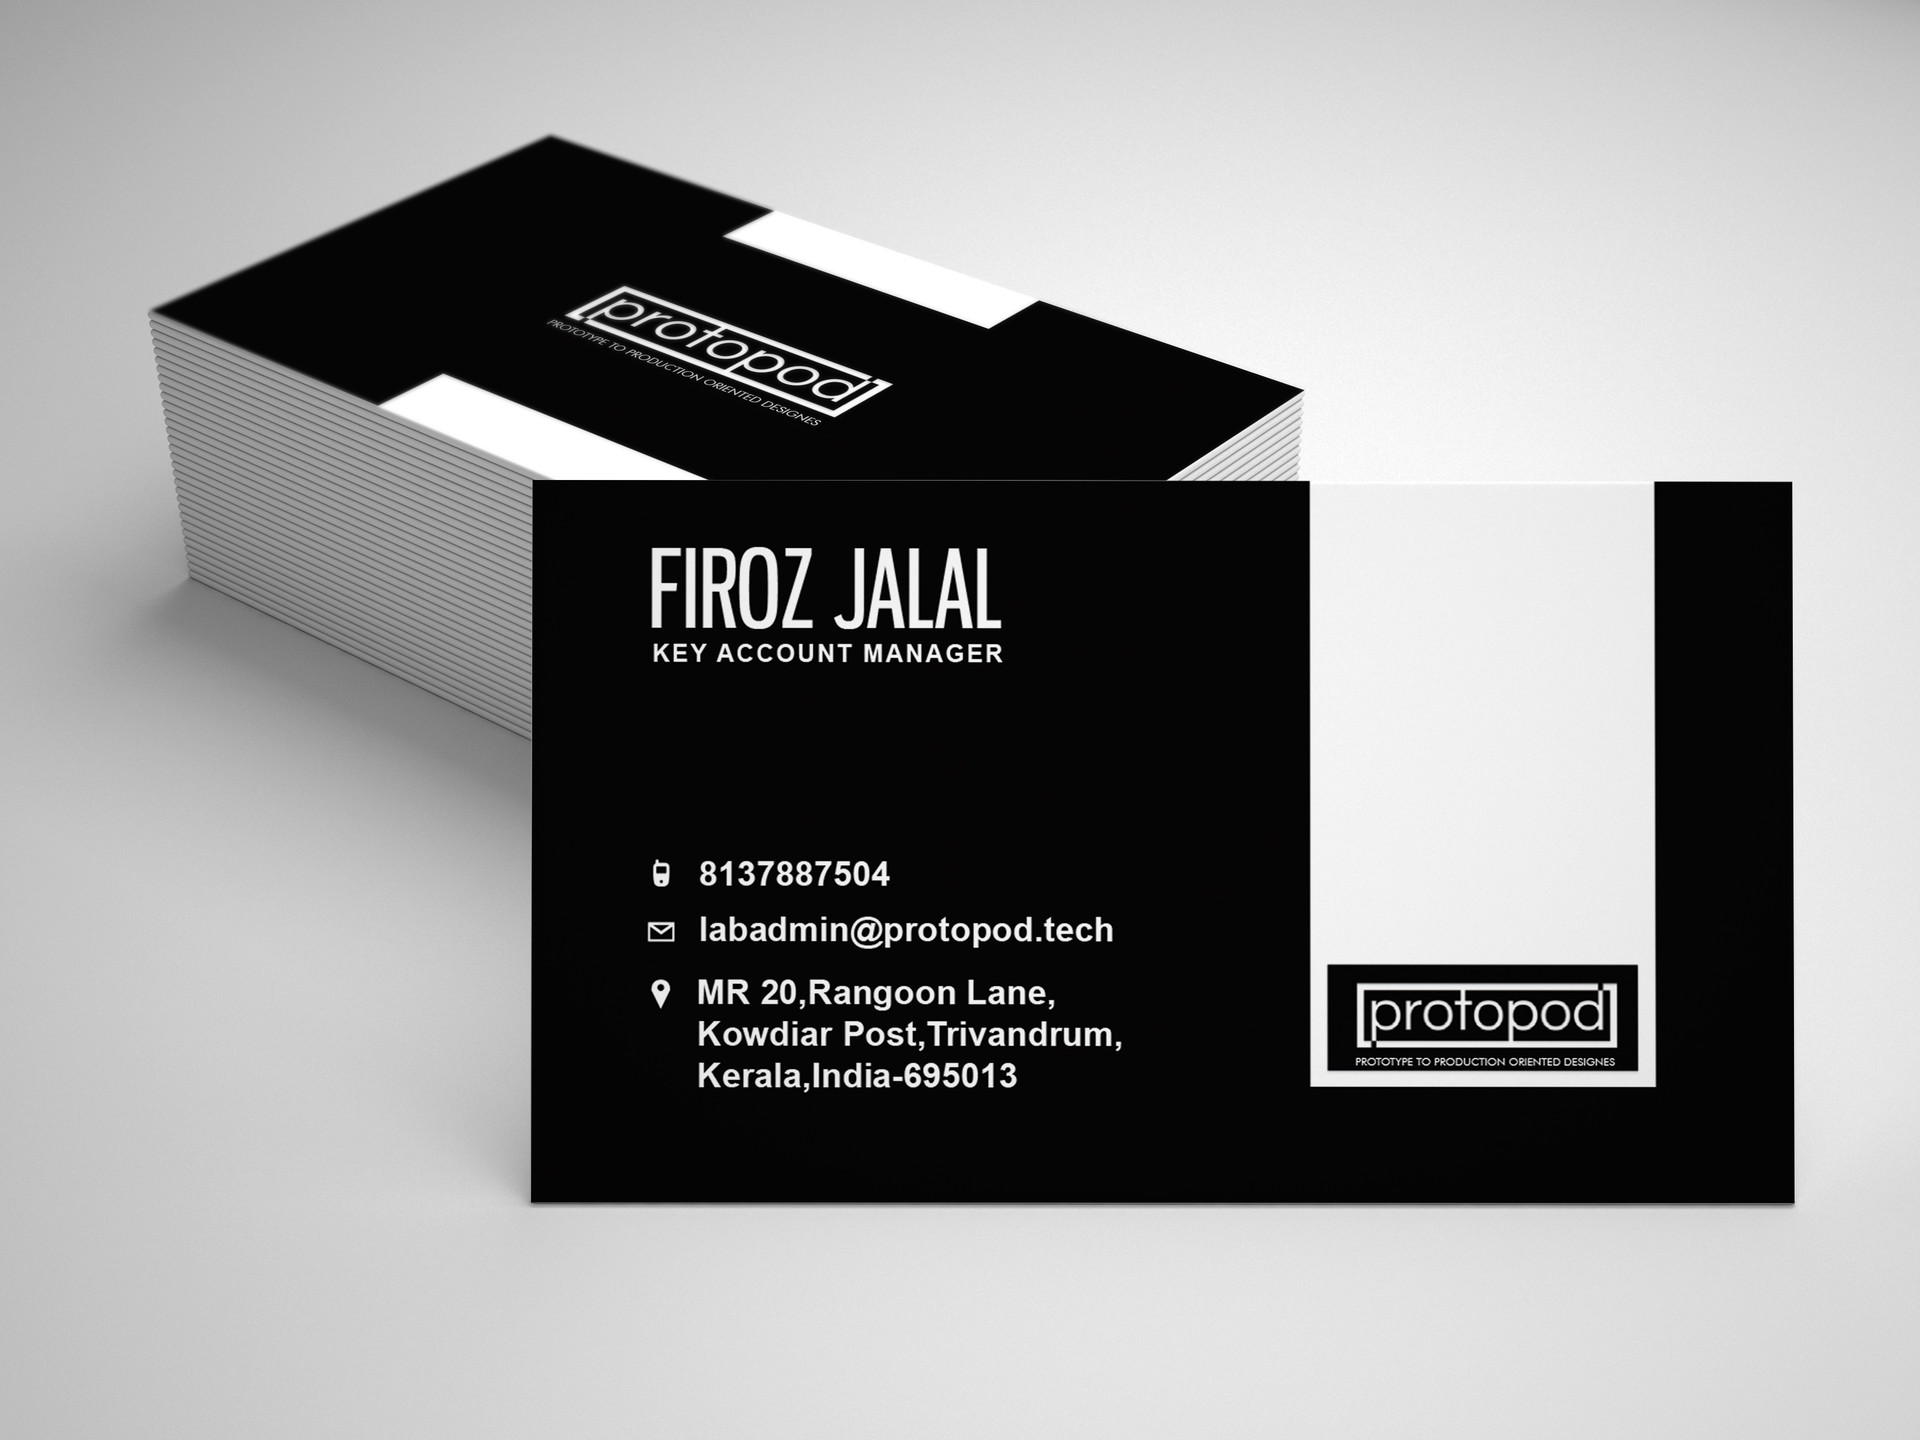 Punyar nair protopod company business card design back side protopod company business card design back side colourmoves